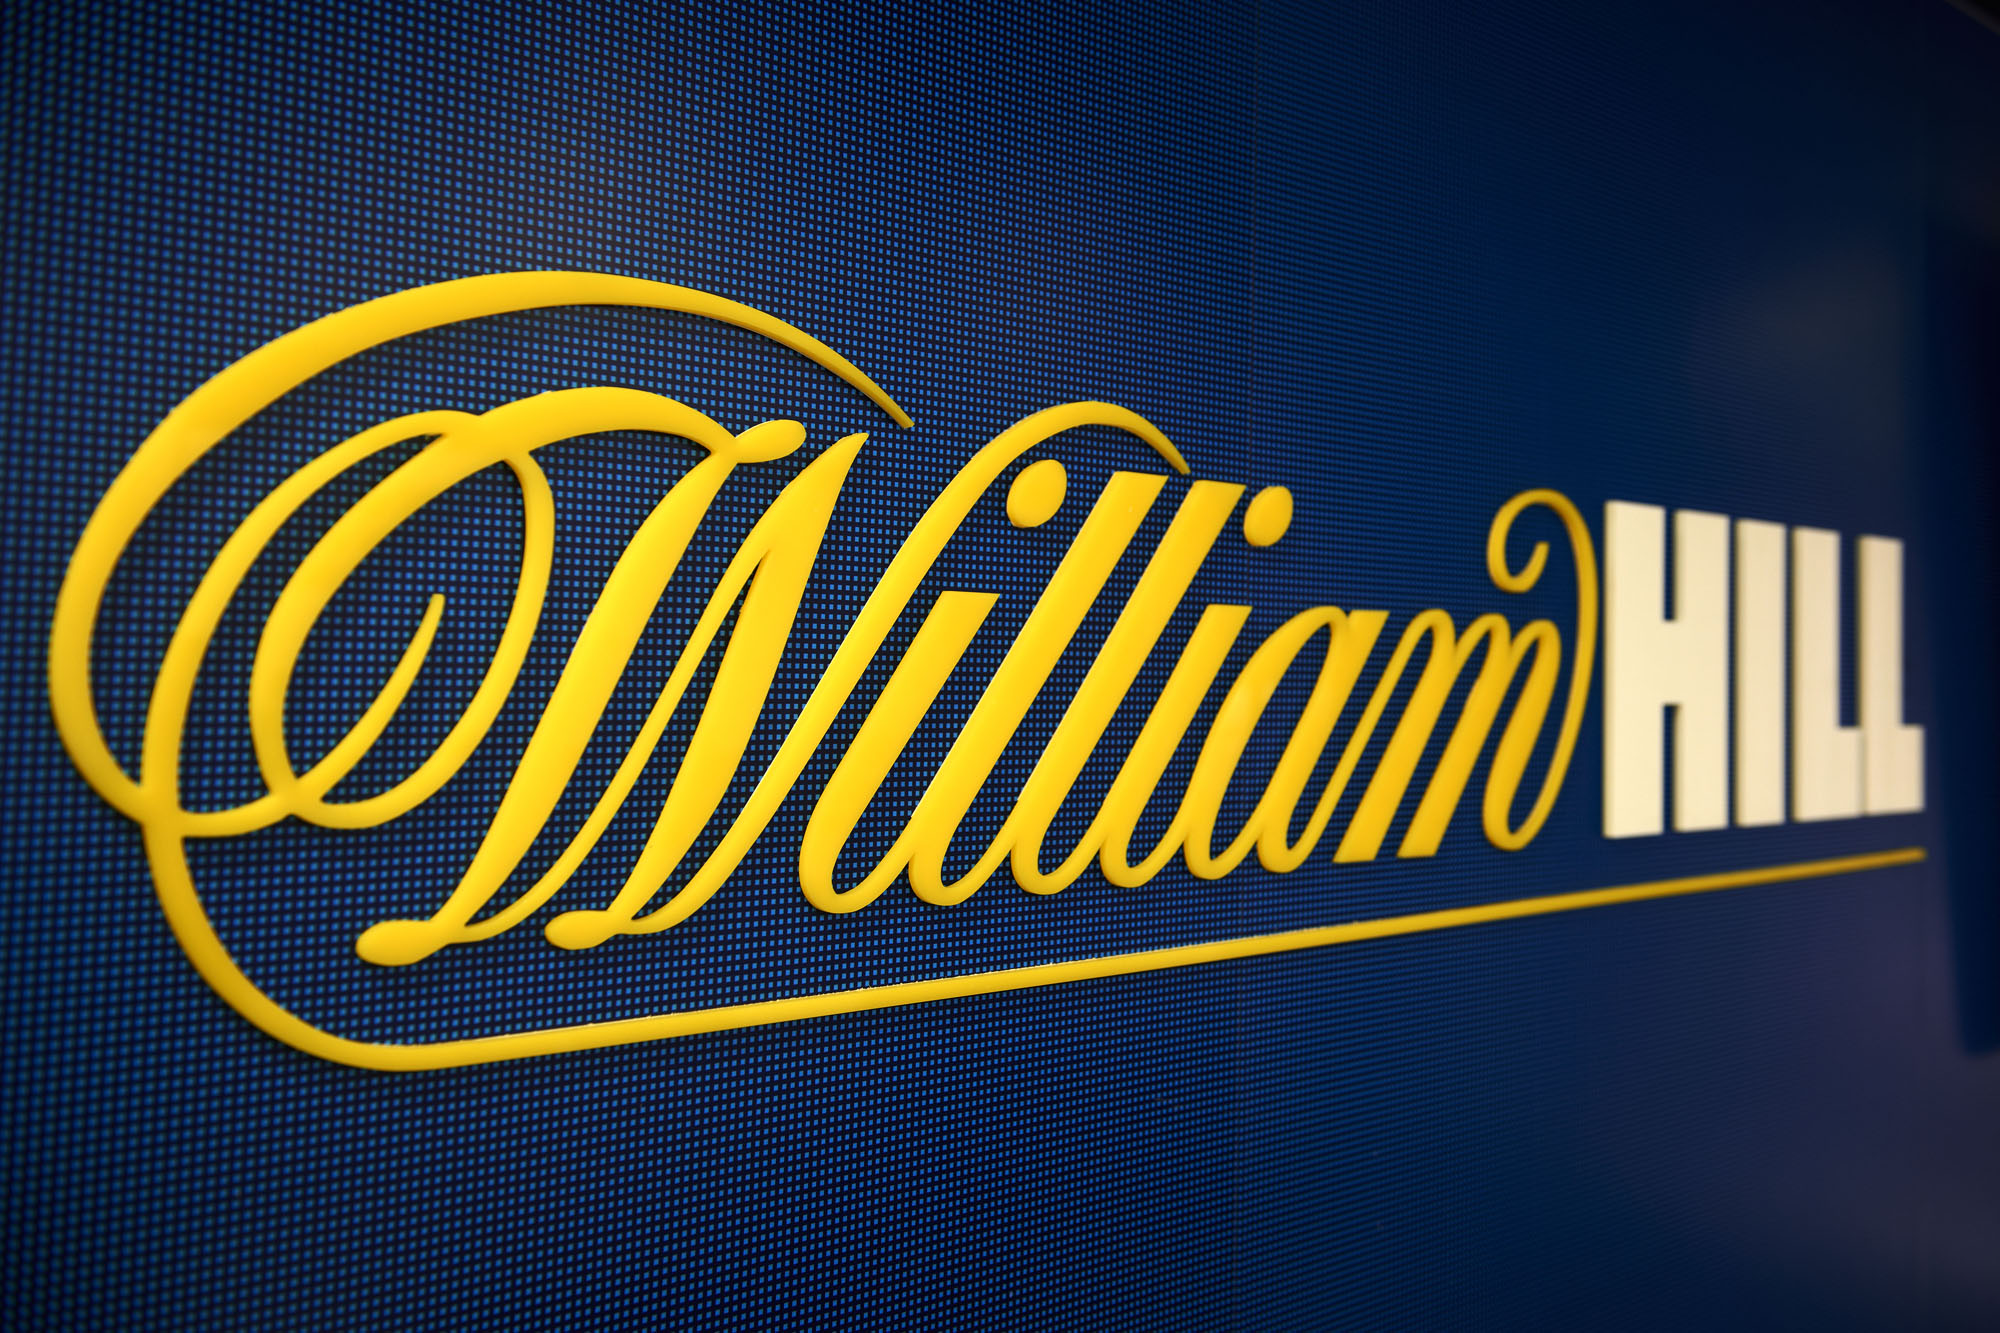 Enkelt bemanning william hill